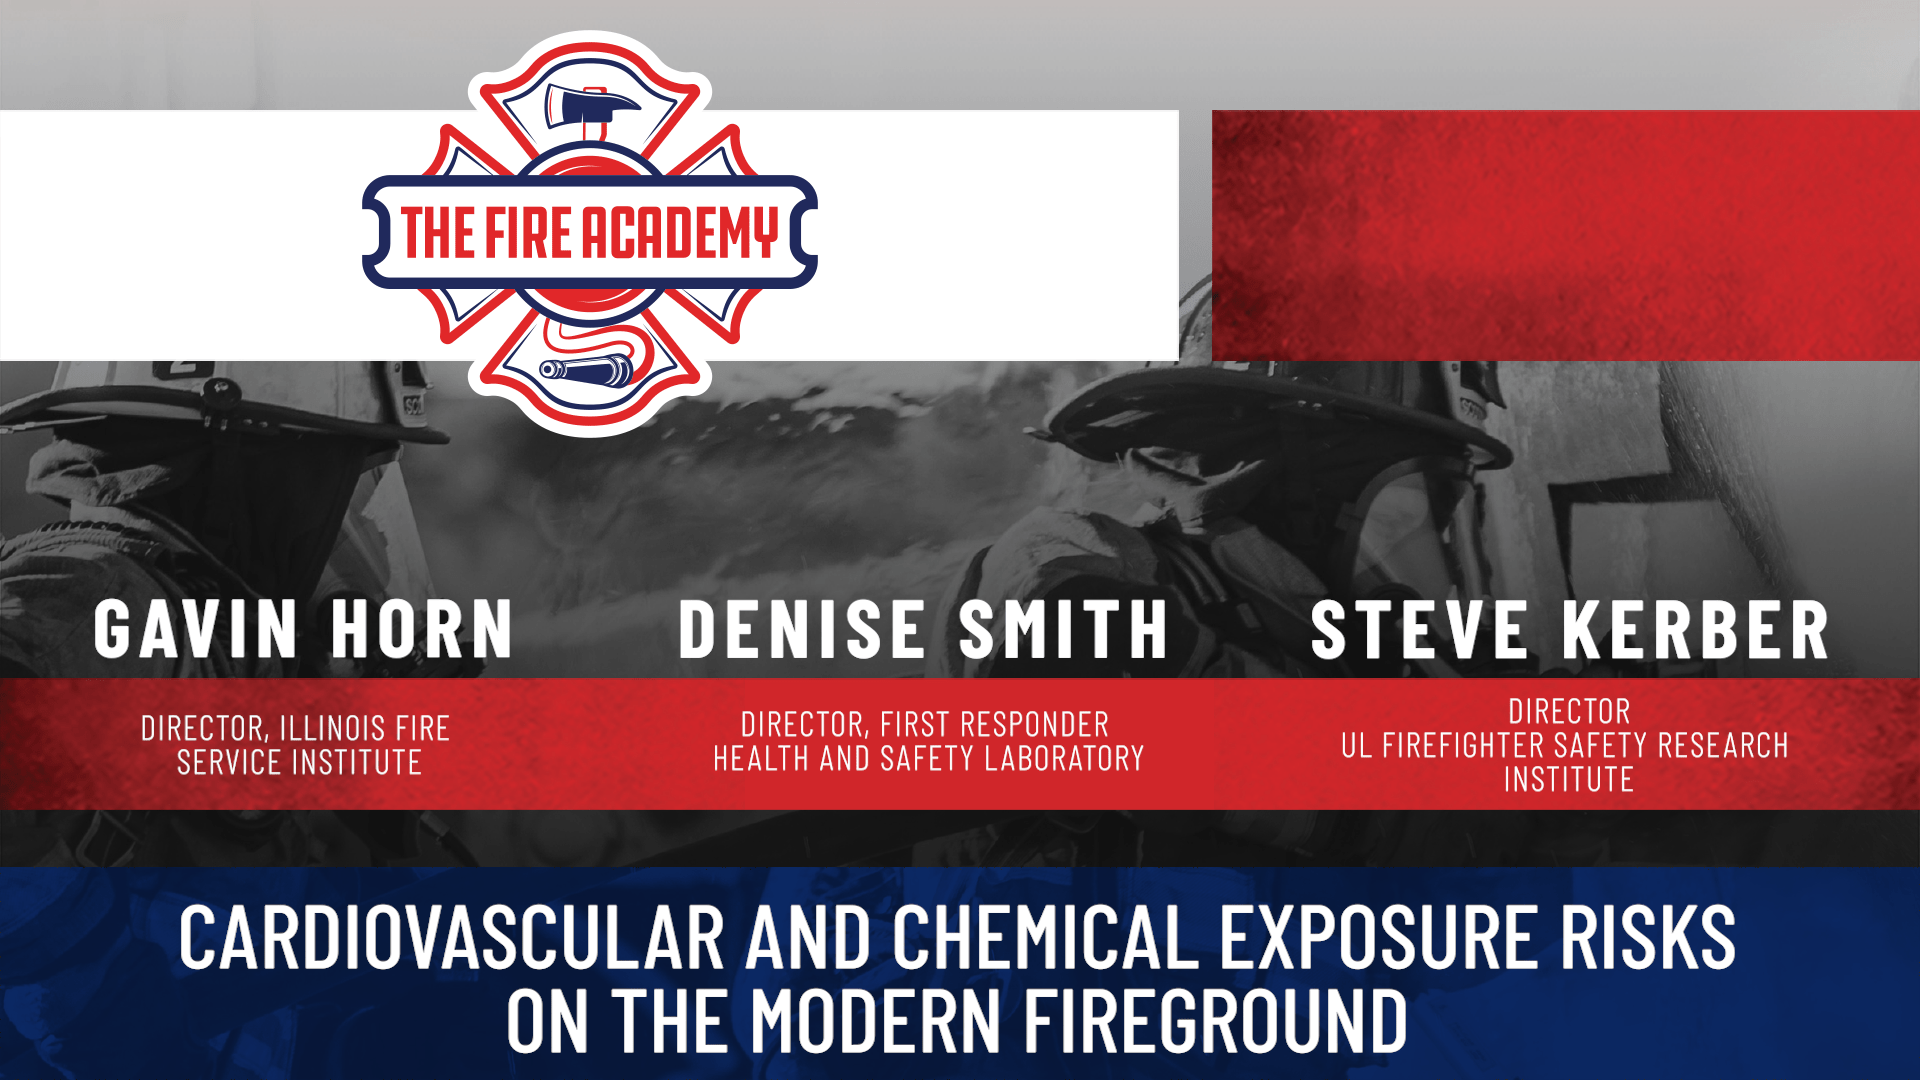 Cardiovascular and Chemical Exposure Risks on the Modern Fireground